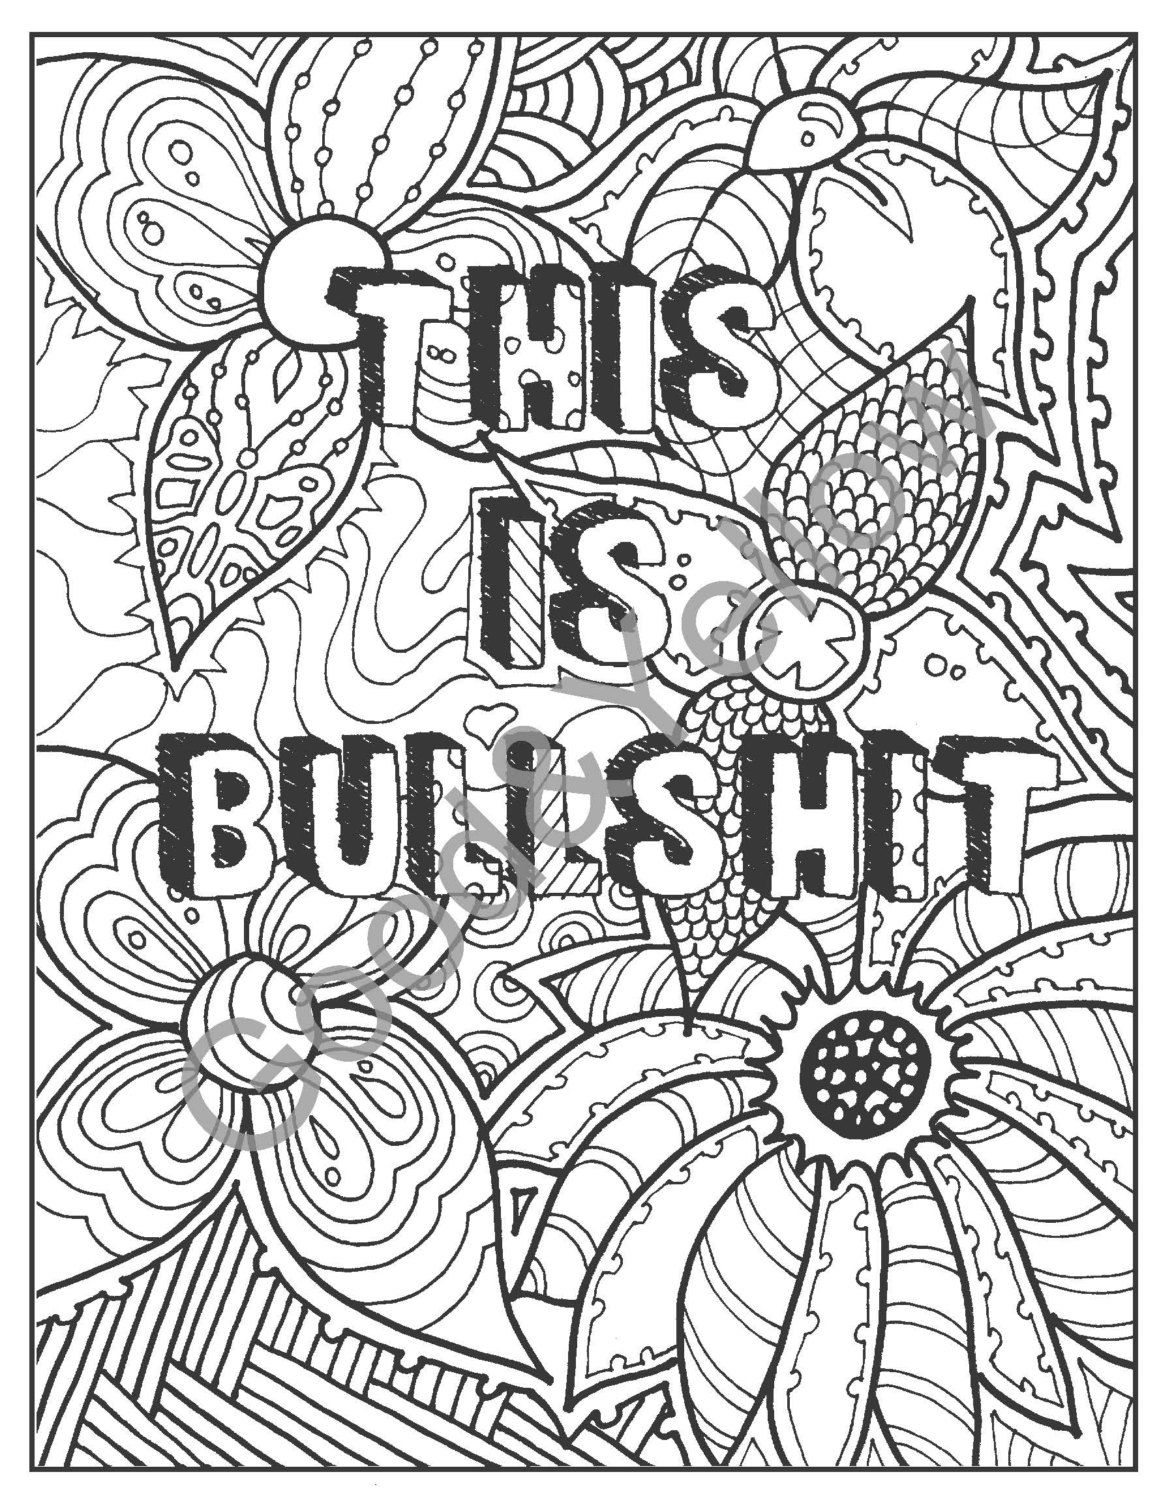 Swear word coloring pages etsy - Swear Words Adult Coloring Book Hate Your By Lovablelynzi On Etsy